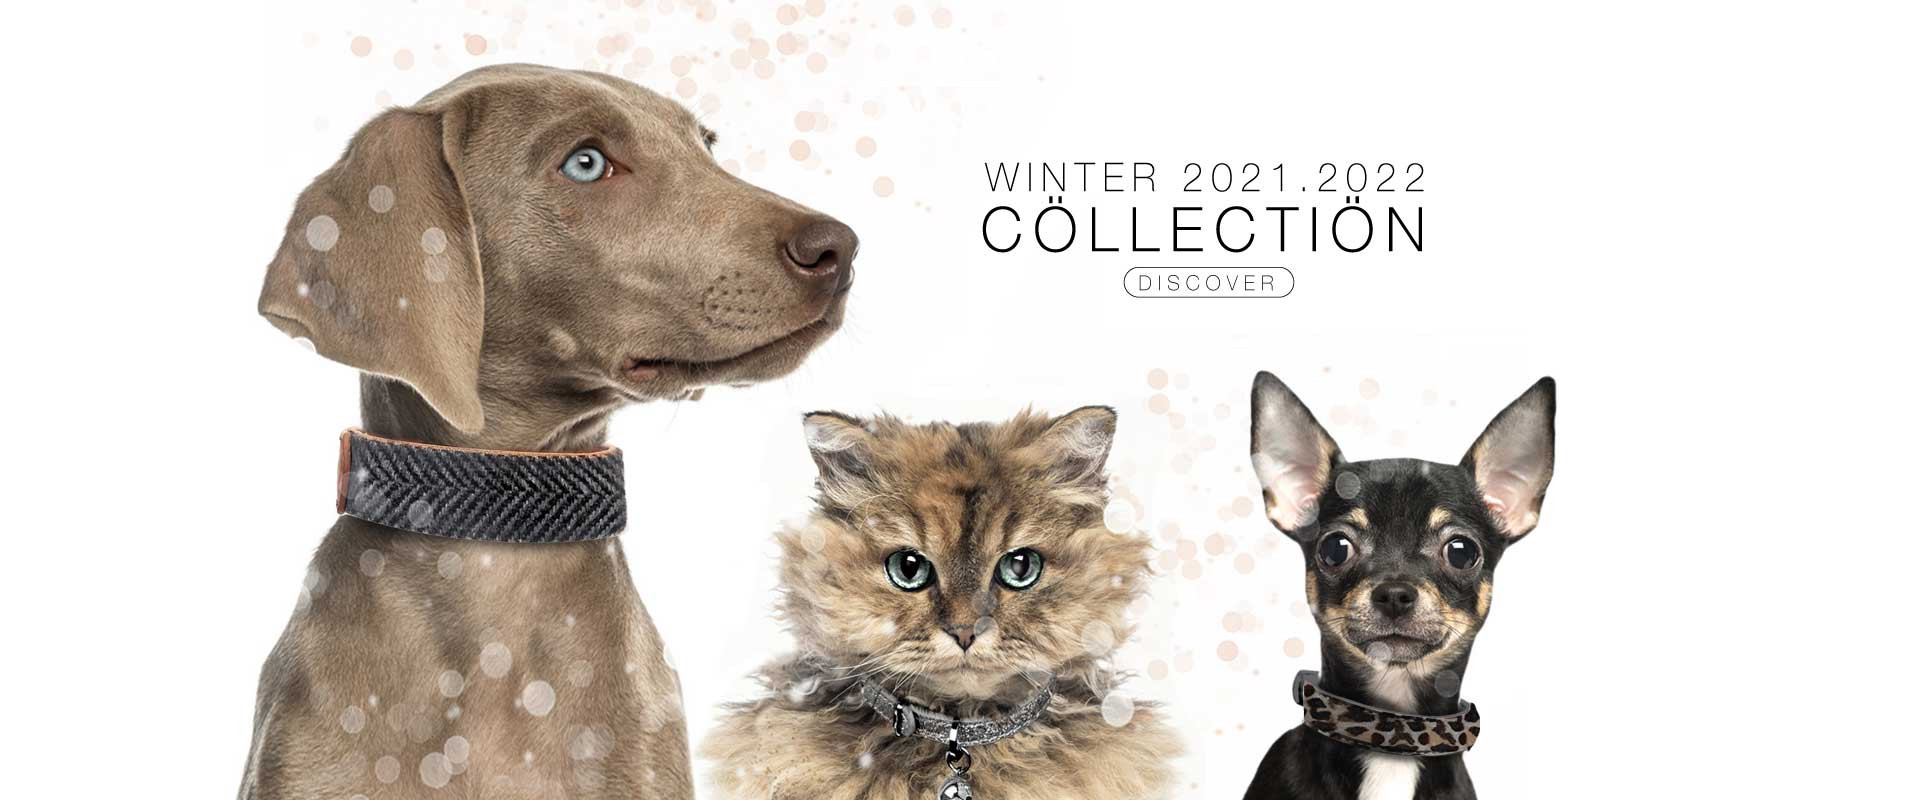 Milk & Pepper, Fashion And Accessories For Dogs & Cats -  Accessories Winter 2021